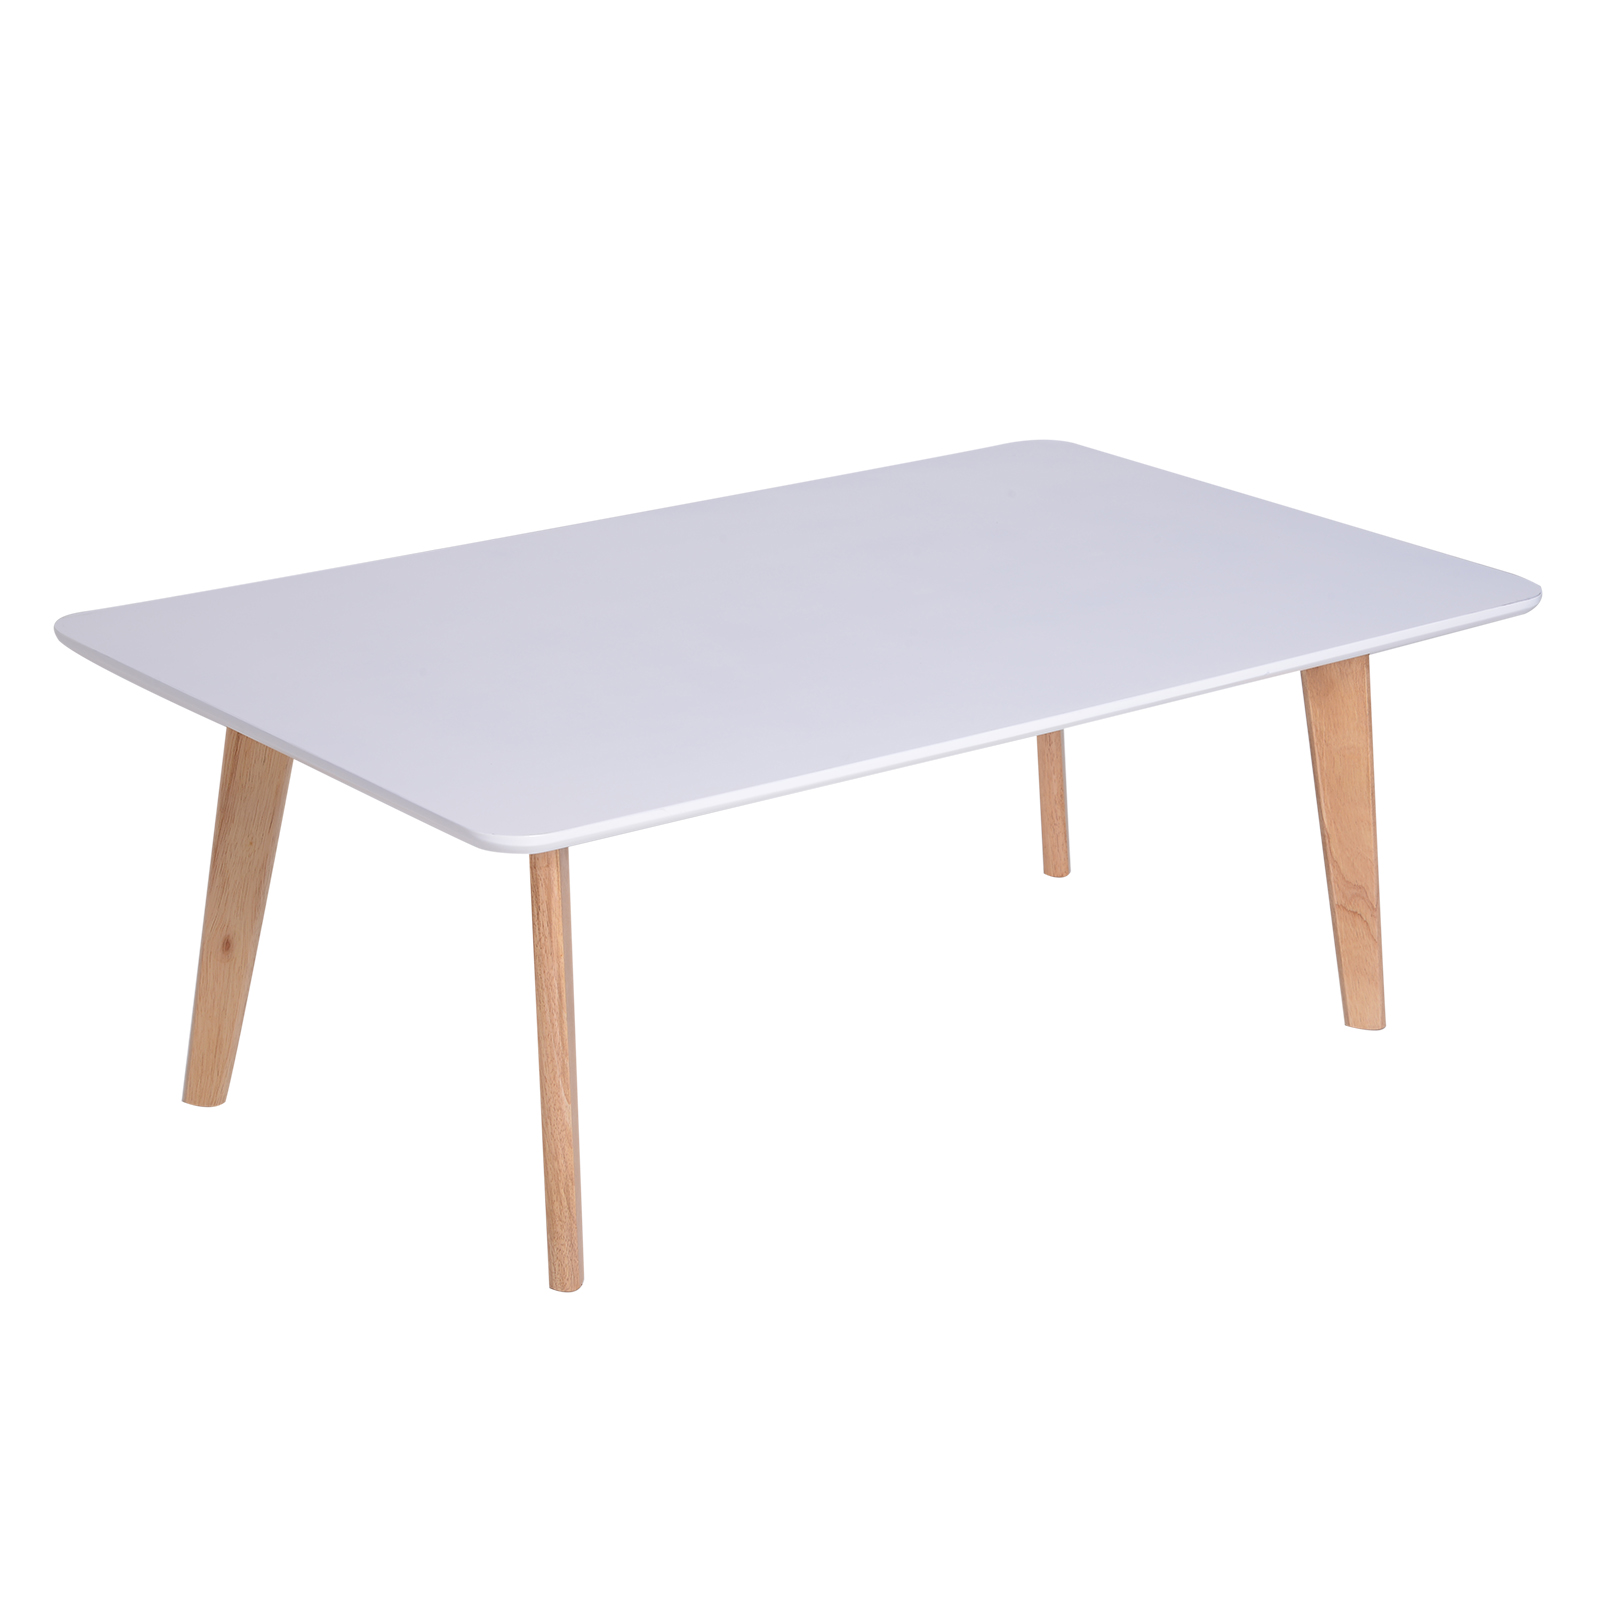 HOMCOM Coffee Table Nordic Style Living Room Wood 120x70x45 Cm White